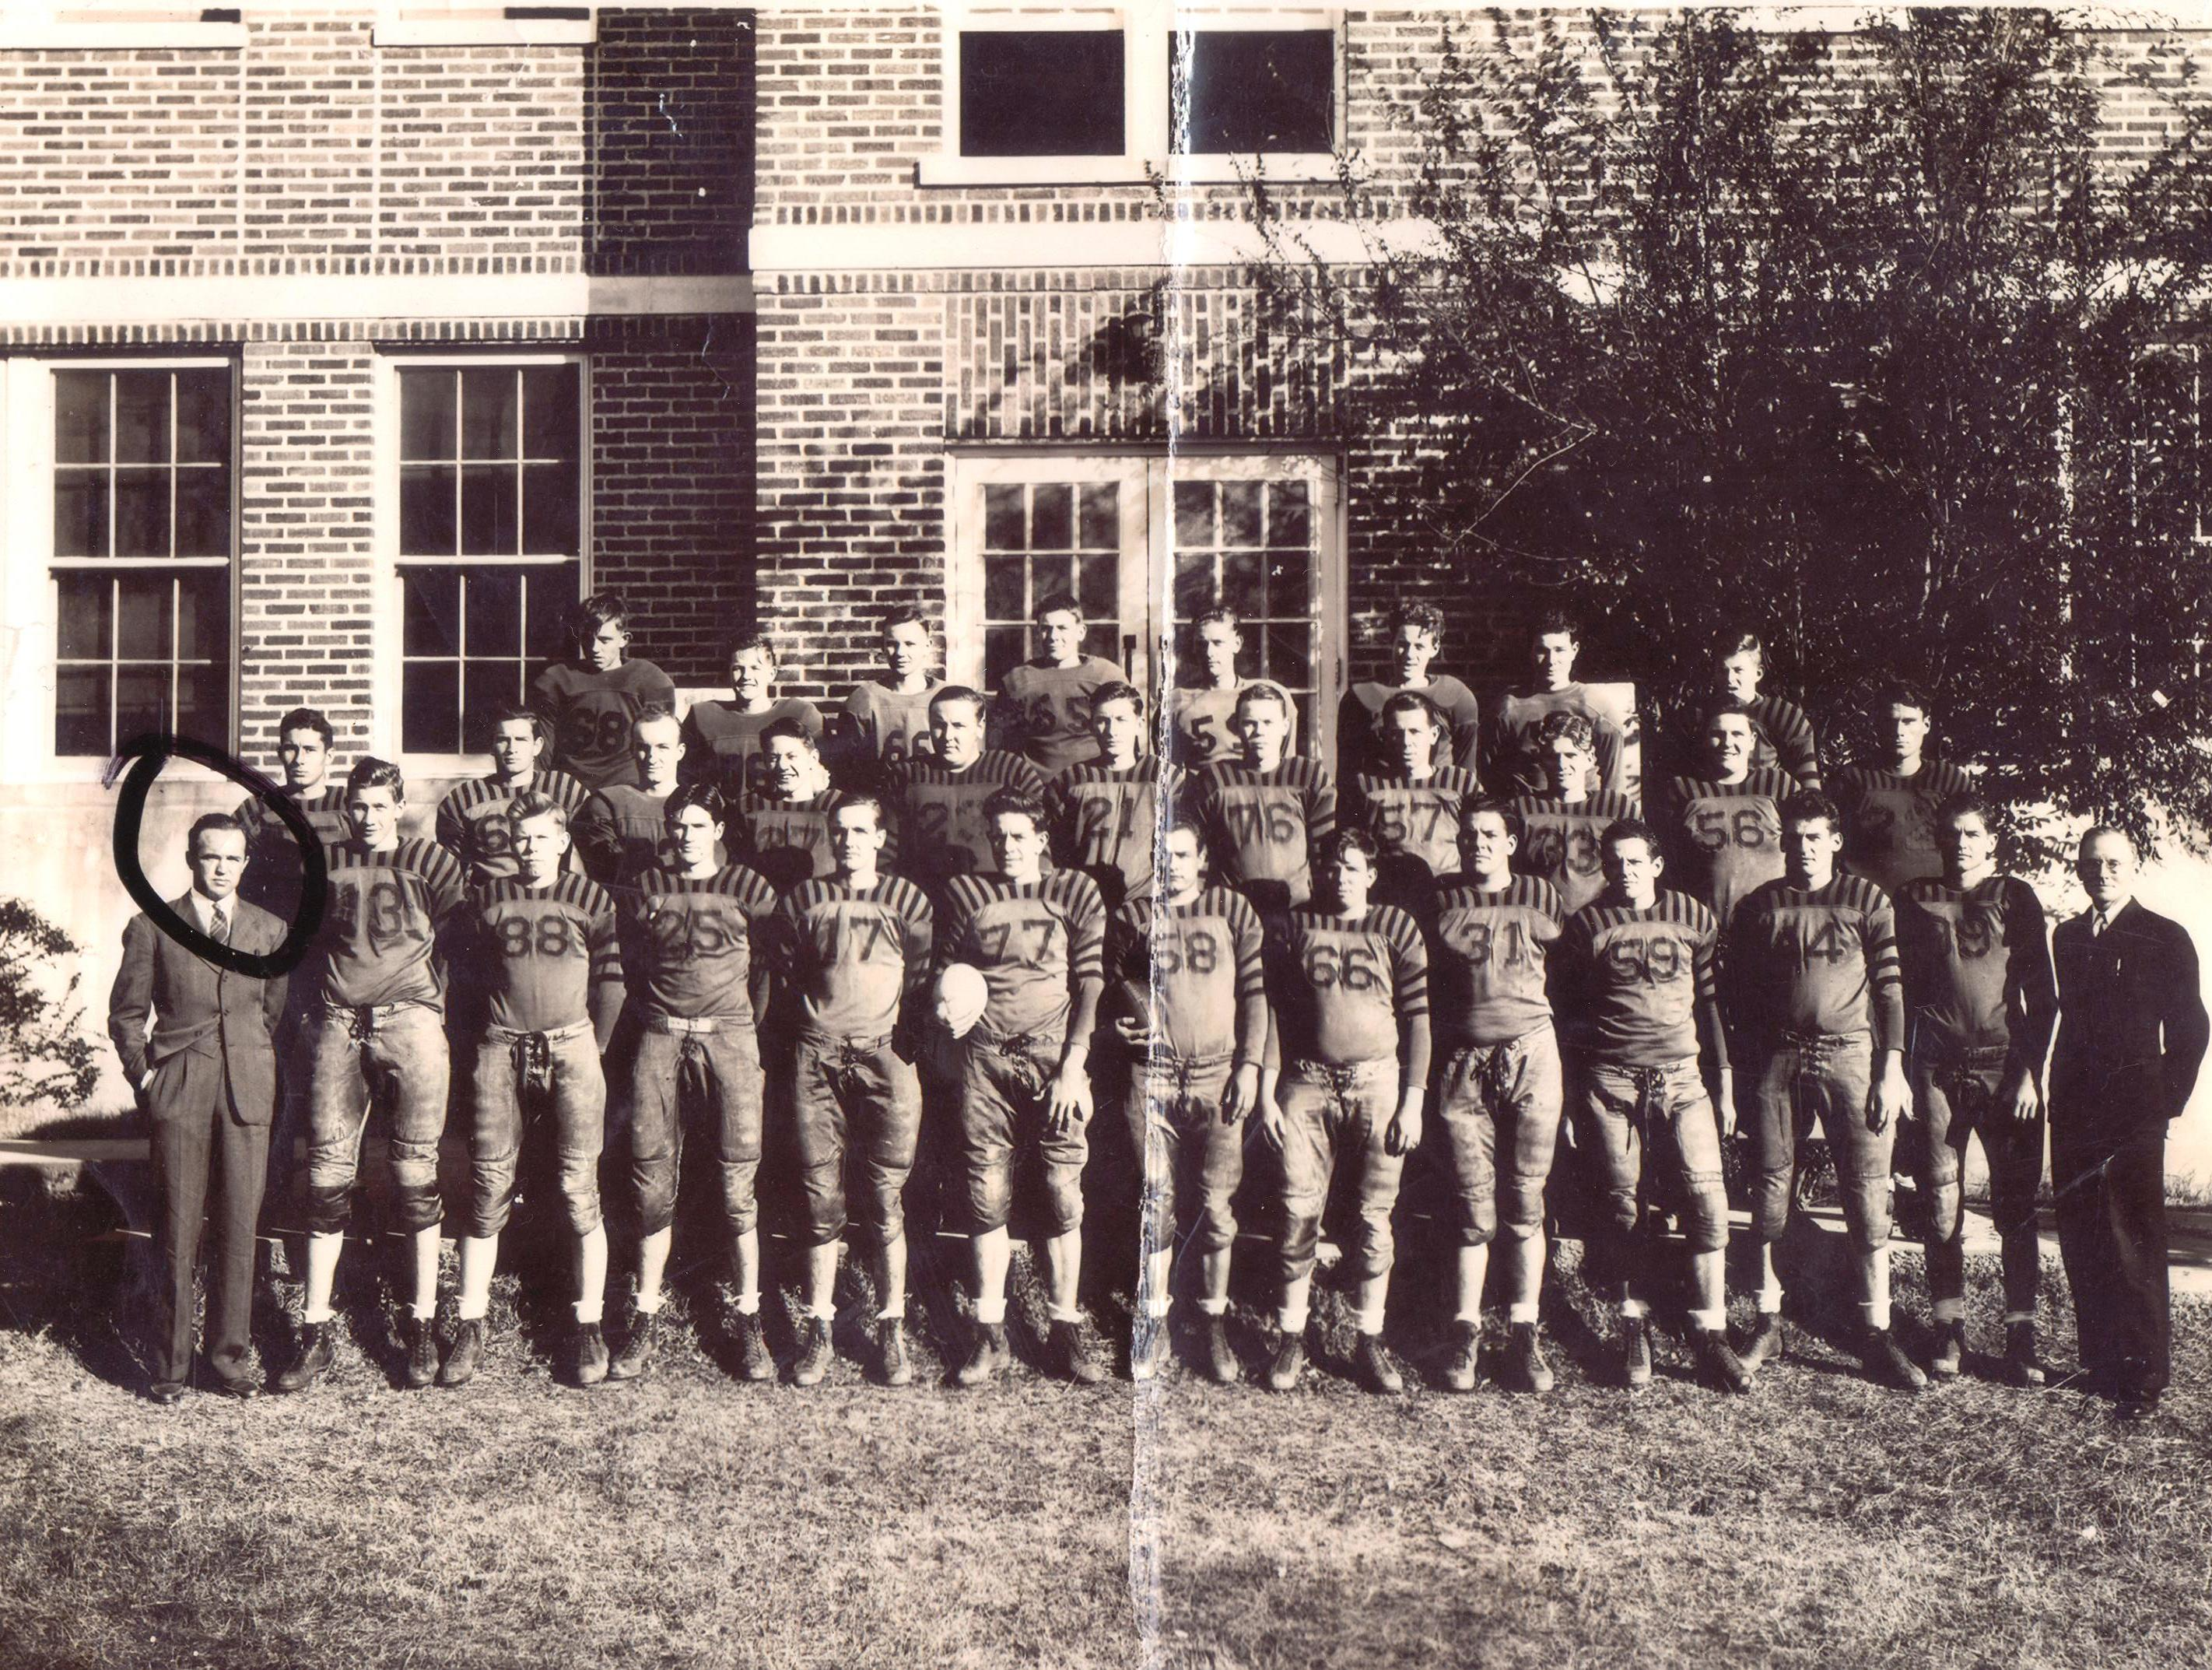 Coach Bill with the Starkville High School Football team